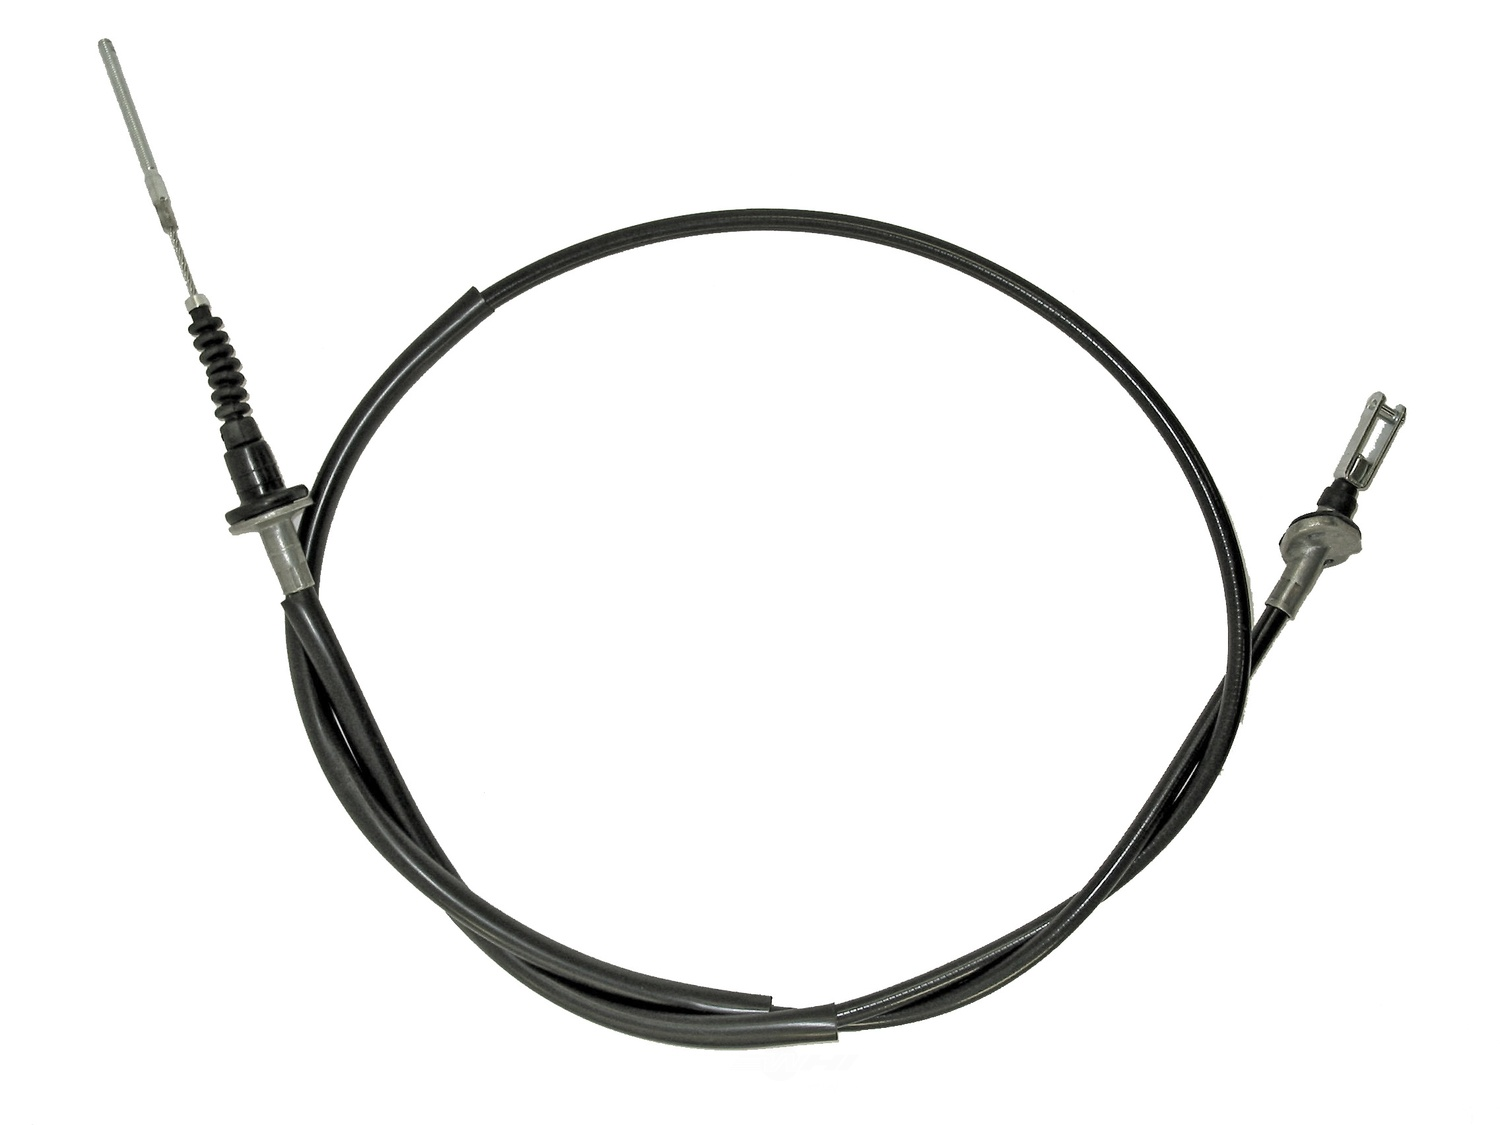 Premium Manual Clutch Cable fits 1992-1998 Suzuki Sidekick